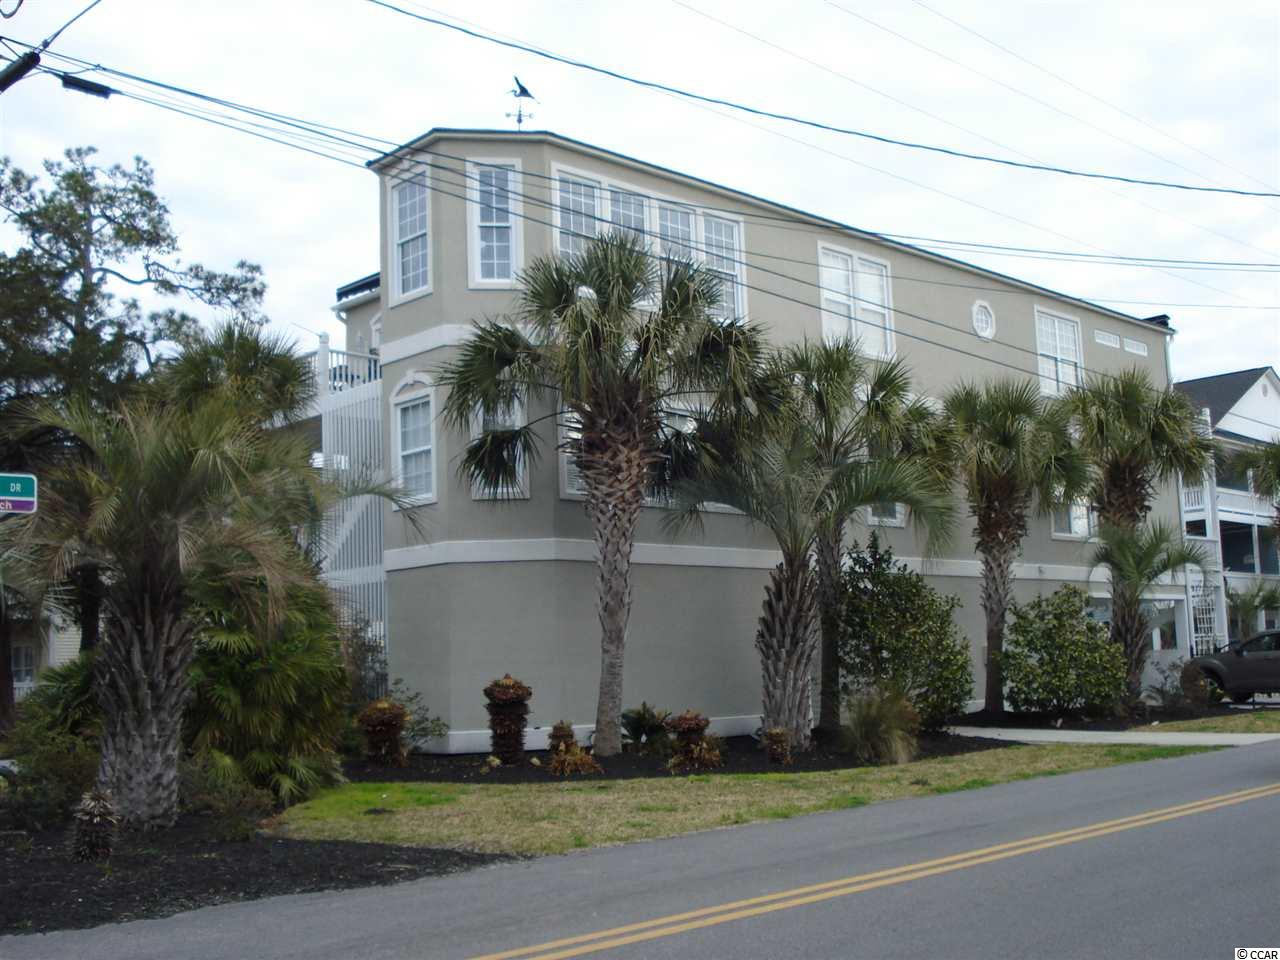 """UNIQUE, UNIQUE BEAUTIFUL CUSTOM BUILT BEACH HOUSE PROPERTY!! This well appointed FULLY FURNISHED house has two self contained units.  Each unit has 2100 square feet. The intercom is convenient for announcing your arrival.  Let's take a tour.....There is ample, convenient parking. Arriving you will see beautiful landscaping and foliage around the lovely pool area with hidden water jets that arch into the pool that is lighted for use at night.  Grilling is necessary to make a day of pool fun with a full dining area by the pool.  There is a half bath within steps of the pool and a hot & Cold water shower facility for comfort, as well.  Underneath the house, beside the pool, is a huge conversation area complete with rocking chairs to relax, TV in a cabinet  and a time to enjoy the wonderful ocean breezes day or night.  Lots of storage areas for beach toys, beach chairs and oh, there is a parking area for your golf cart for a fun, 2 1/2 block drive to the ocean.   let's take the elevator to the top floor unit, owners private unit.  Beautiful 18"""" tiles, crown molding and spacious rooms await your approval.  The Kitchen/dining area has a work island/breakfast bar with lateral cut, top of the line granite counter tops, just like all the other counter tops. All the appliances are stainless steel and there is a matching free standing freezer.  Take time to appreciate the custom, top of the line cabinets. The dining area is large and opens to a very private porch with a retractable cover. Hand selected lighting through out the entire 2100 sq ft unit provides that special touch of class. The great room is complete with a custom corner bamboo, one of a kind, configuration for TV, Fireplace, Surround Sound entertainment.  Through the double French doors you find a beautifully decorated Carolina room with numerous windows on all sides through which you can see the ocean in all its majesty. The master bedroom is very large with double closets and a French door leading to the porch,"""